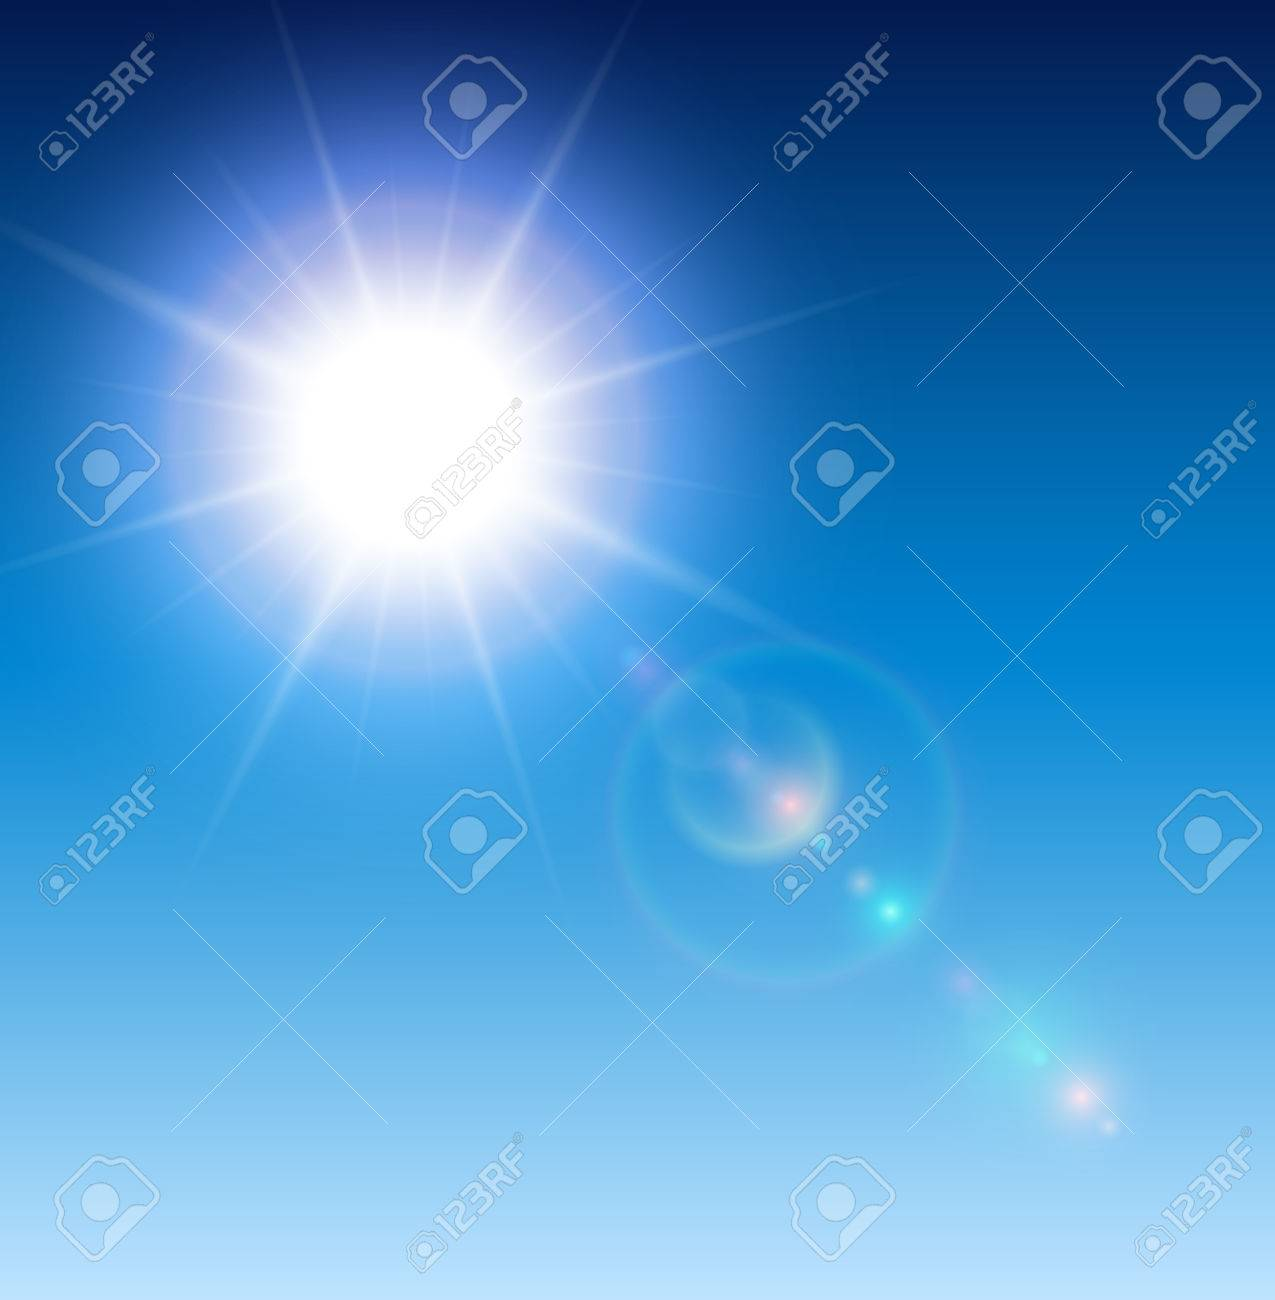 Sun with lens flare, vector background. - 51296727